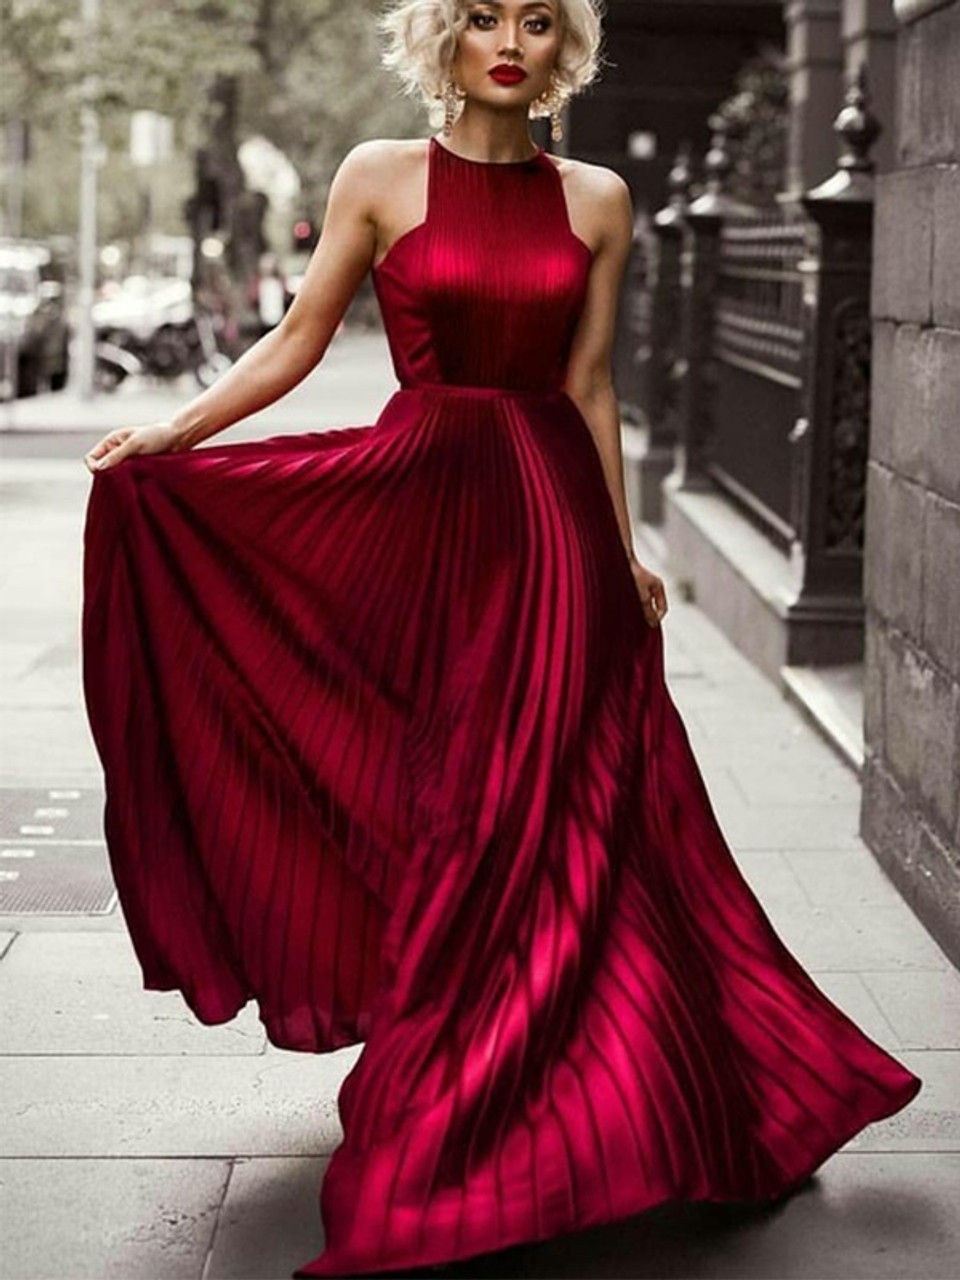 7a92abeaab A-Line Princess Halter Burgundy Red Ruched Silk like Satin Prom Dress